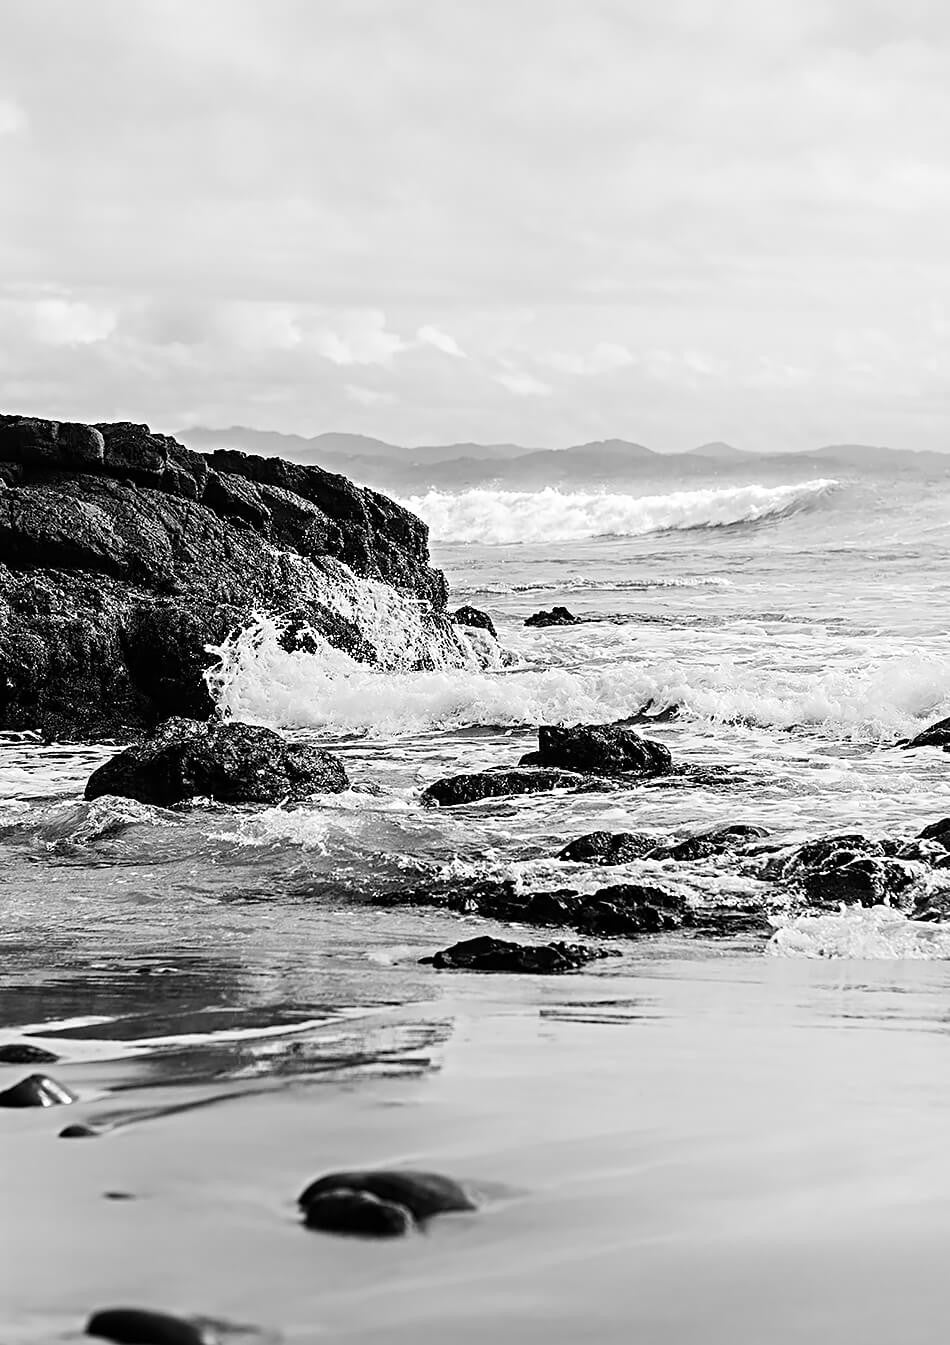 black and white interior art print byron bay brisbane photographer beach print black and white photography byron bay beach framed art monochrone interior art wategos beach byron bay photographic art brisbane beach print brisbane beach art art for walls brisbane byron bay photography